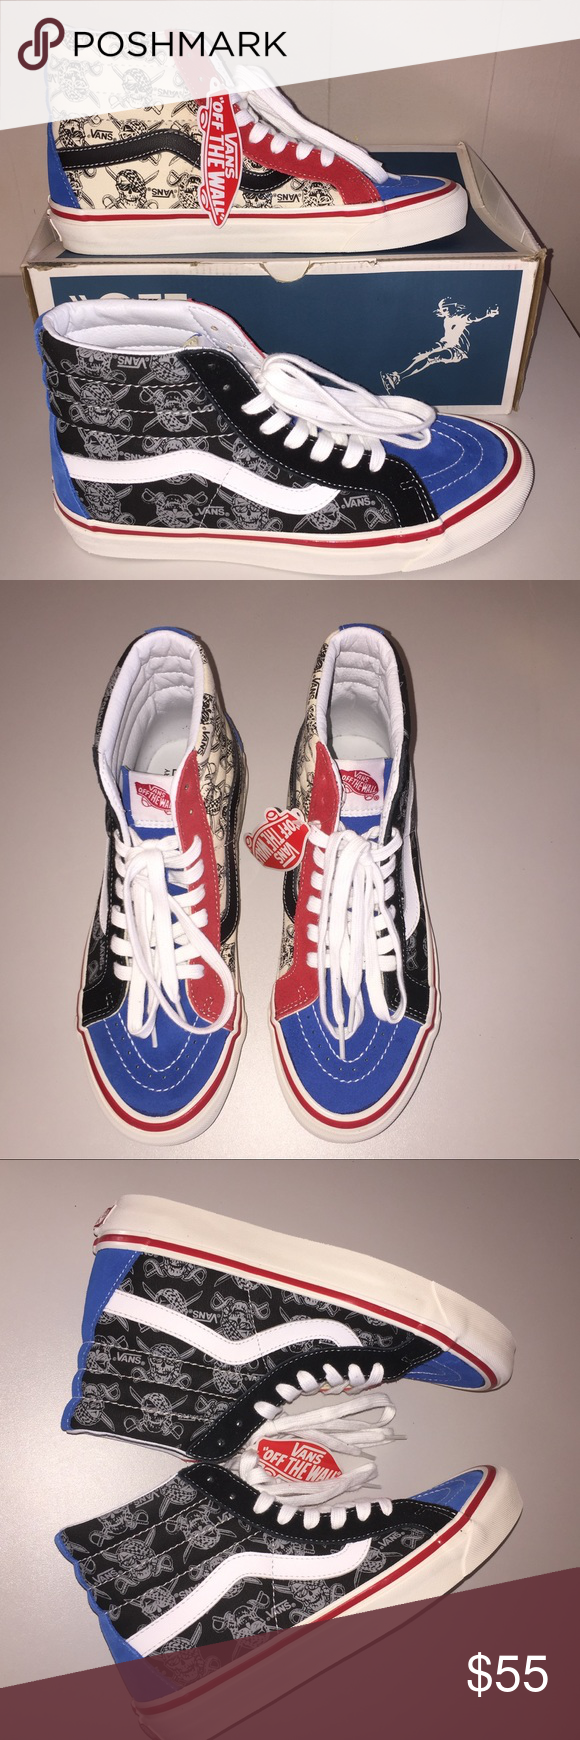 d871819e12 NWT Vans SK8-Hi 38 Reissue 50th STV Multi Print Cool pirate skull print in  multi color suede and sturdy canvas upper. M 7.5 W 9.0 Vans Shoes Sneakers